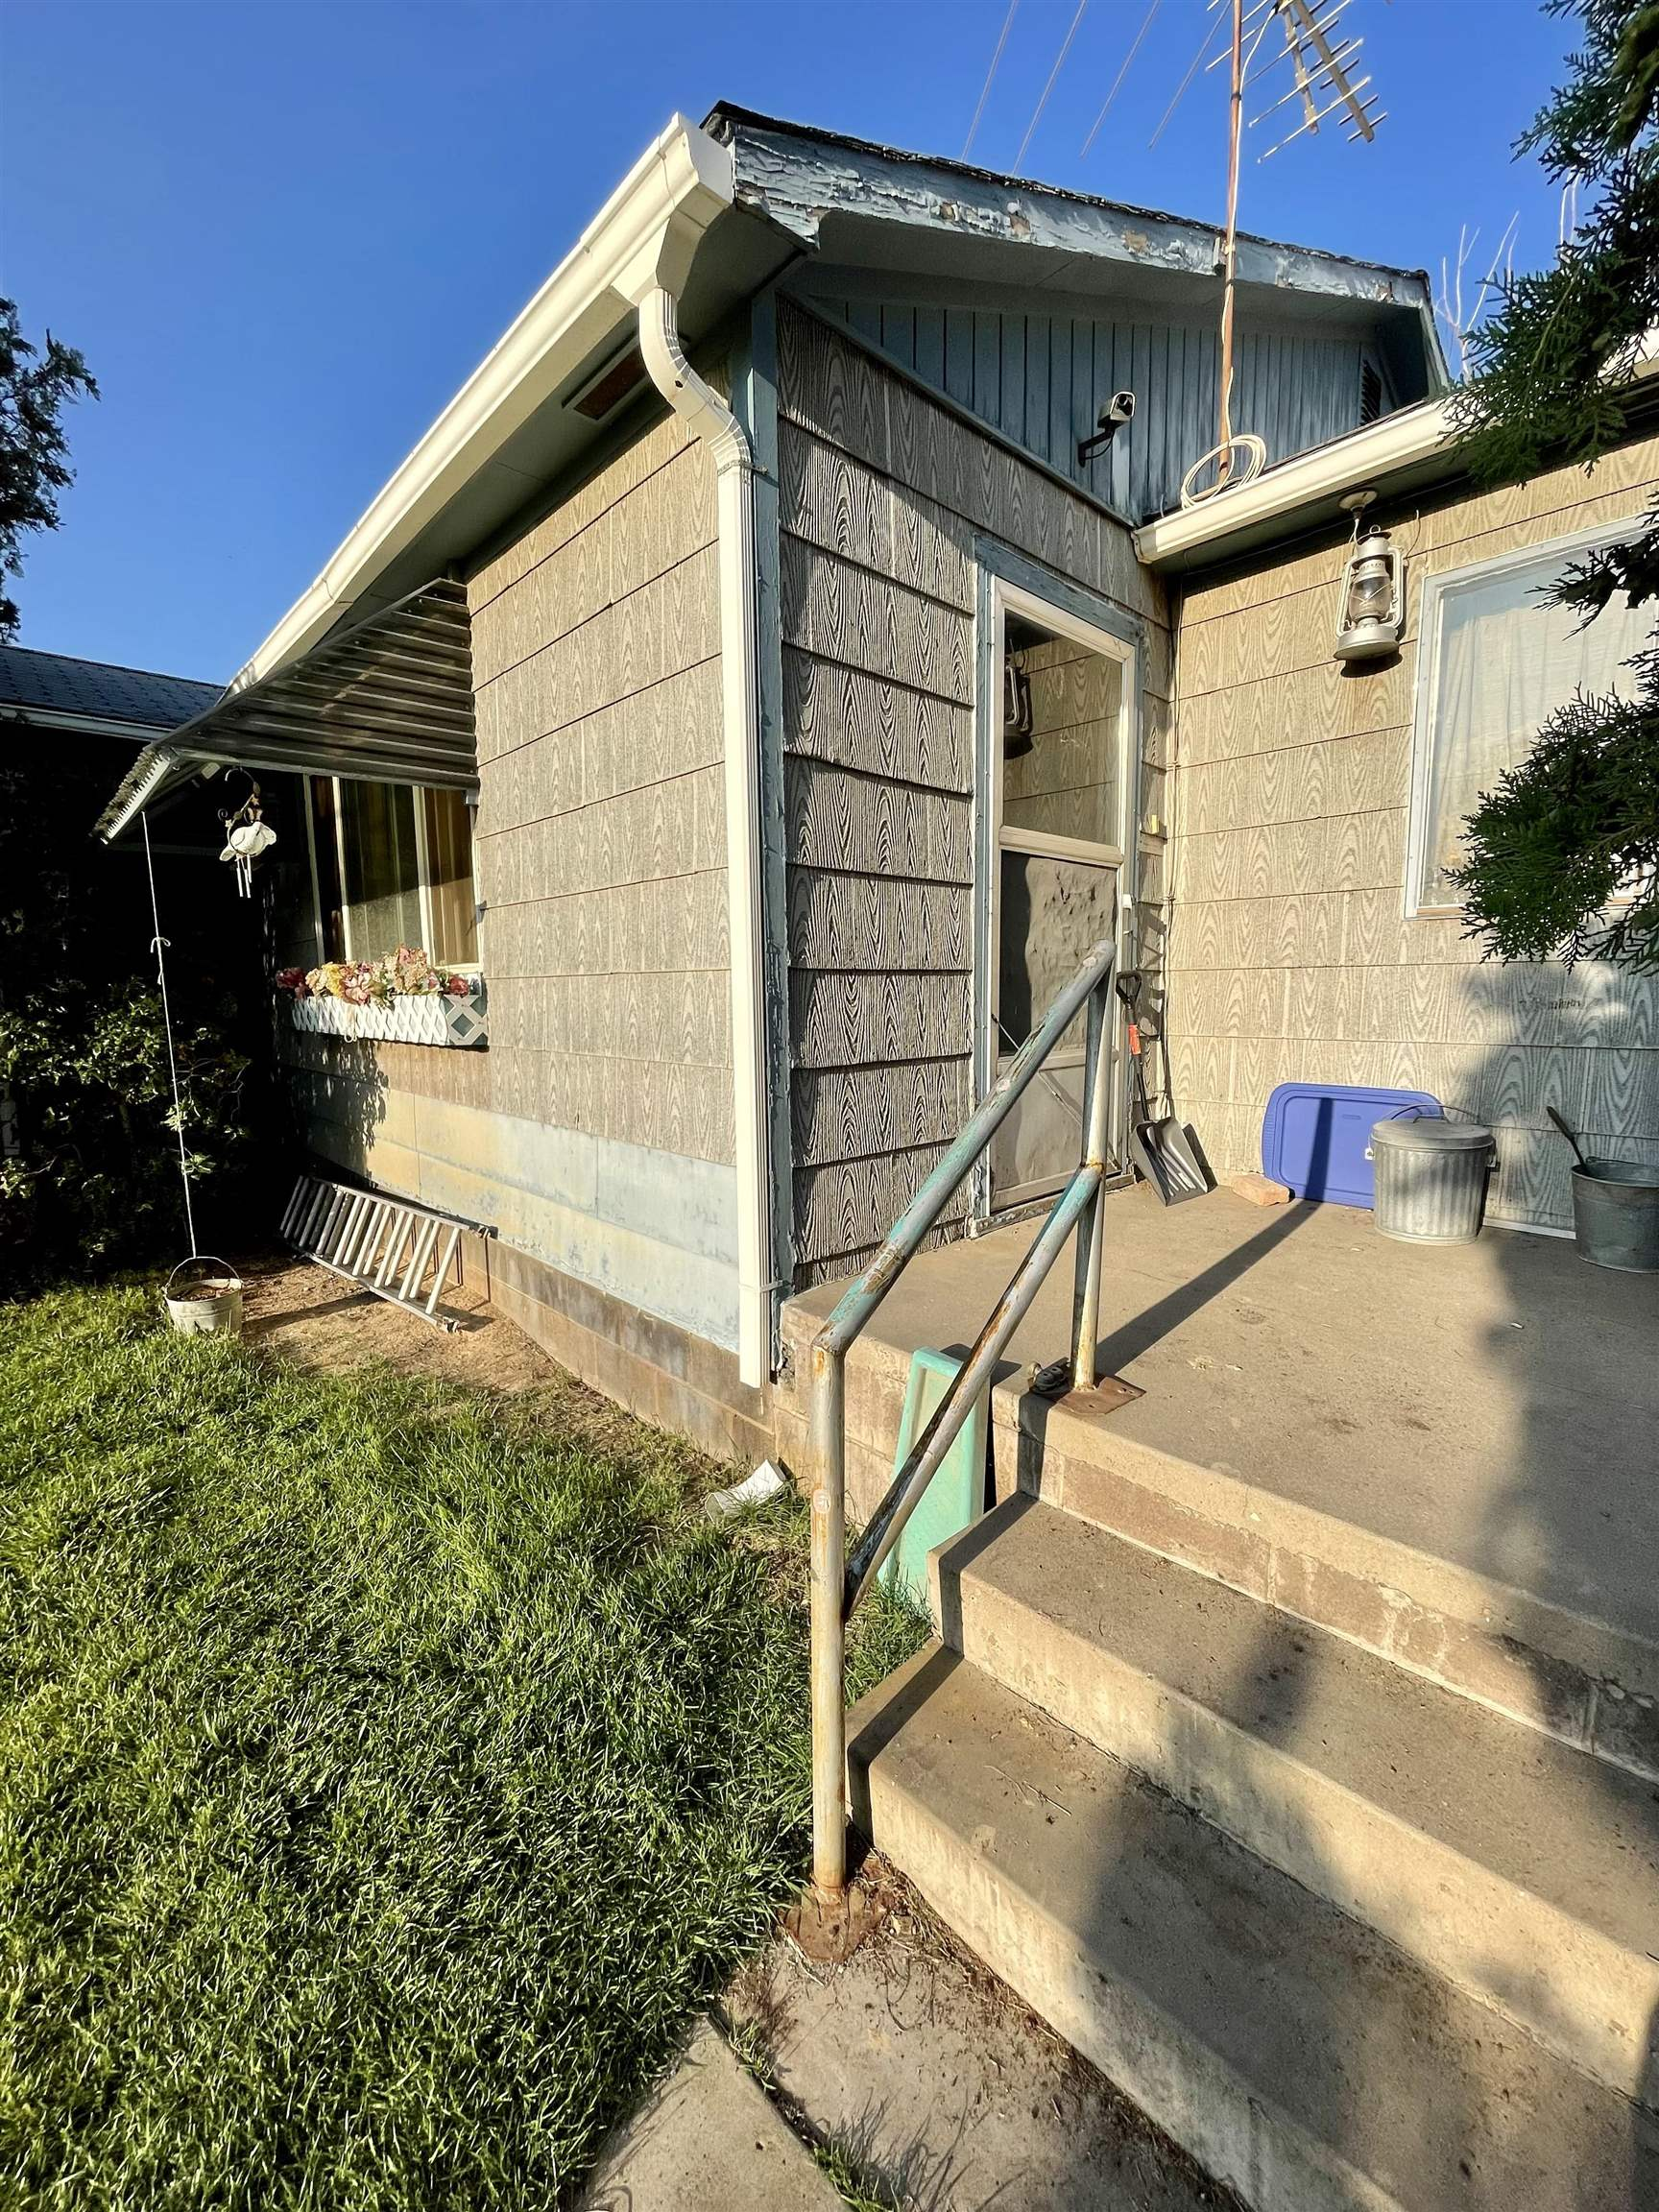 """Incredible investment opportunity on large split able lot. House has """"good bones"""" and just needs a face lift. Perfect lot for a big shop or raising 4-H. Add another unit for additional income or an ideal mother in law set up. The options are endless. Schedule a time to view this property before it's gone.  Buyer to verify all information."""